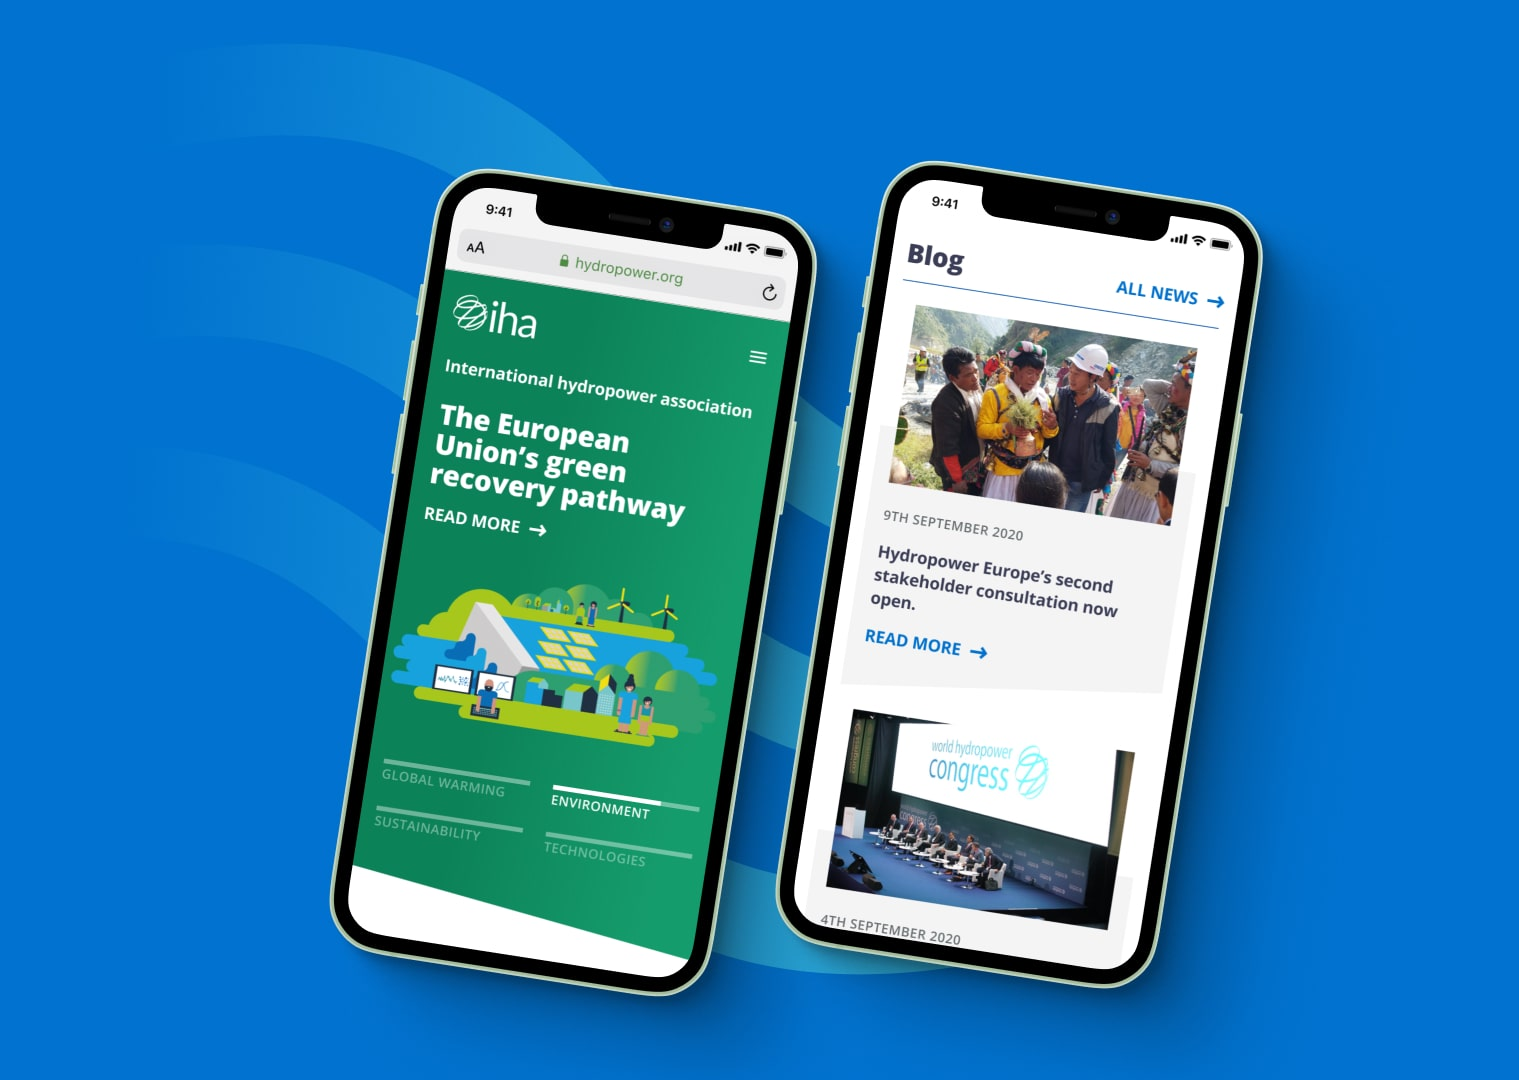 Promoting sustainable hydropower with a sleek new website